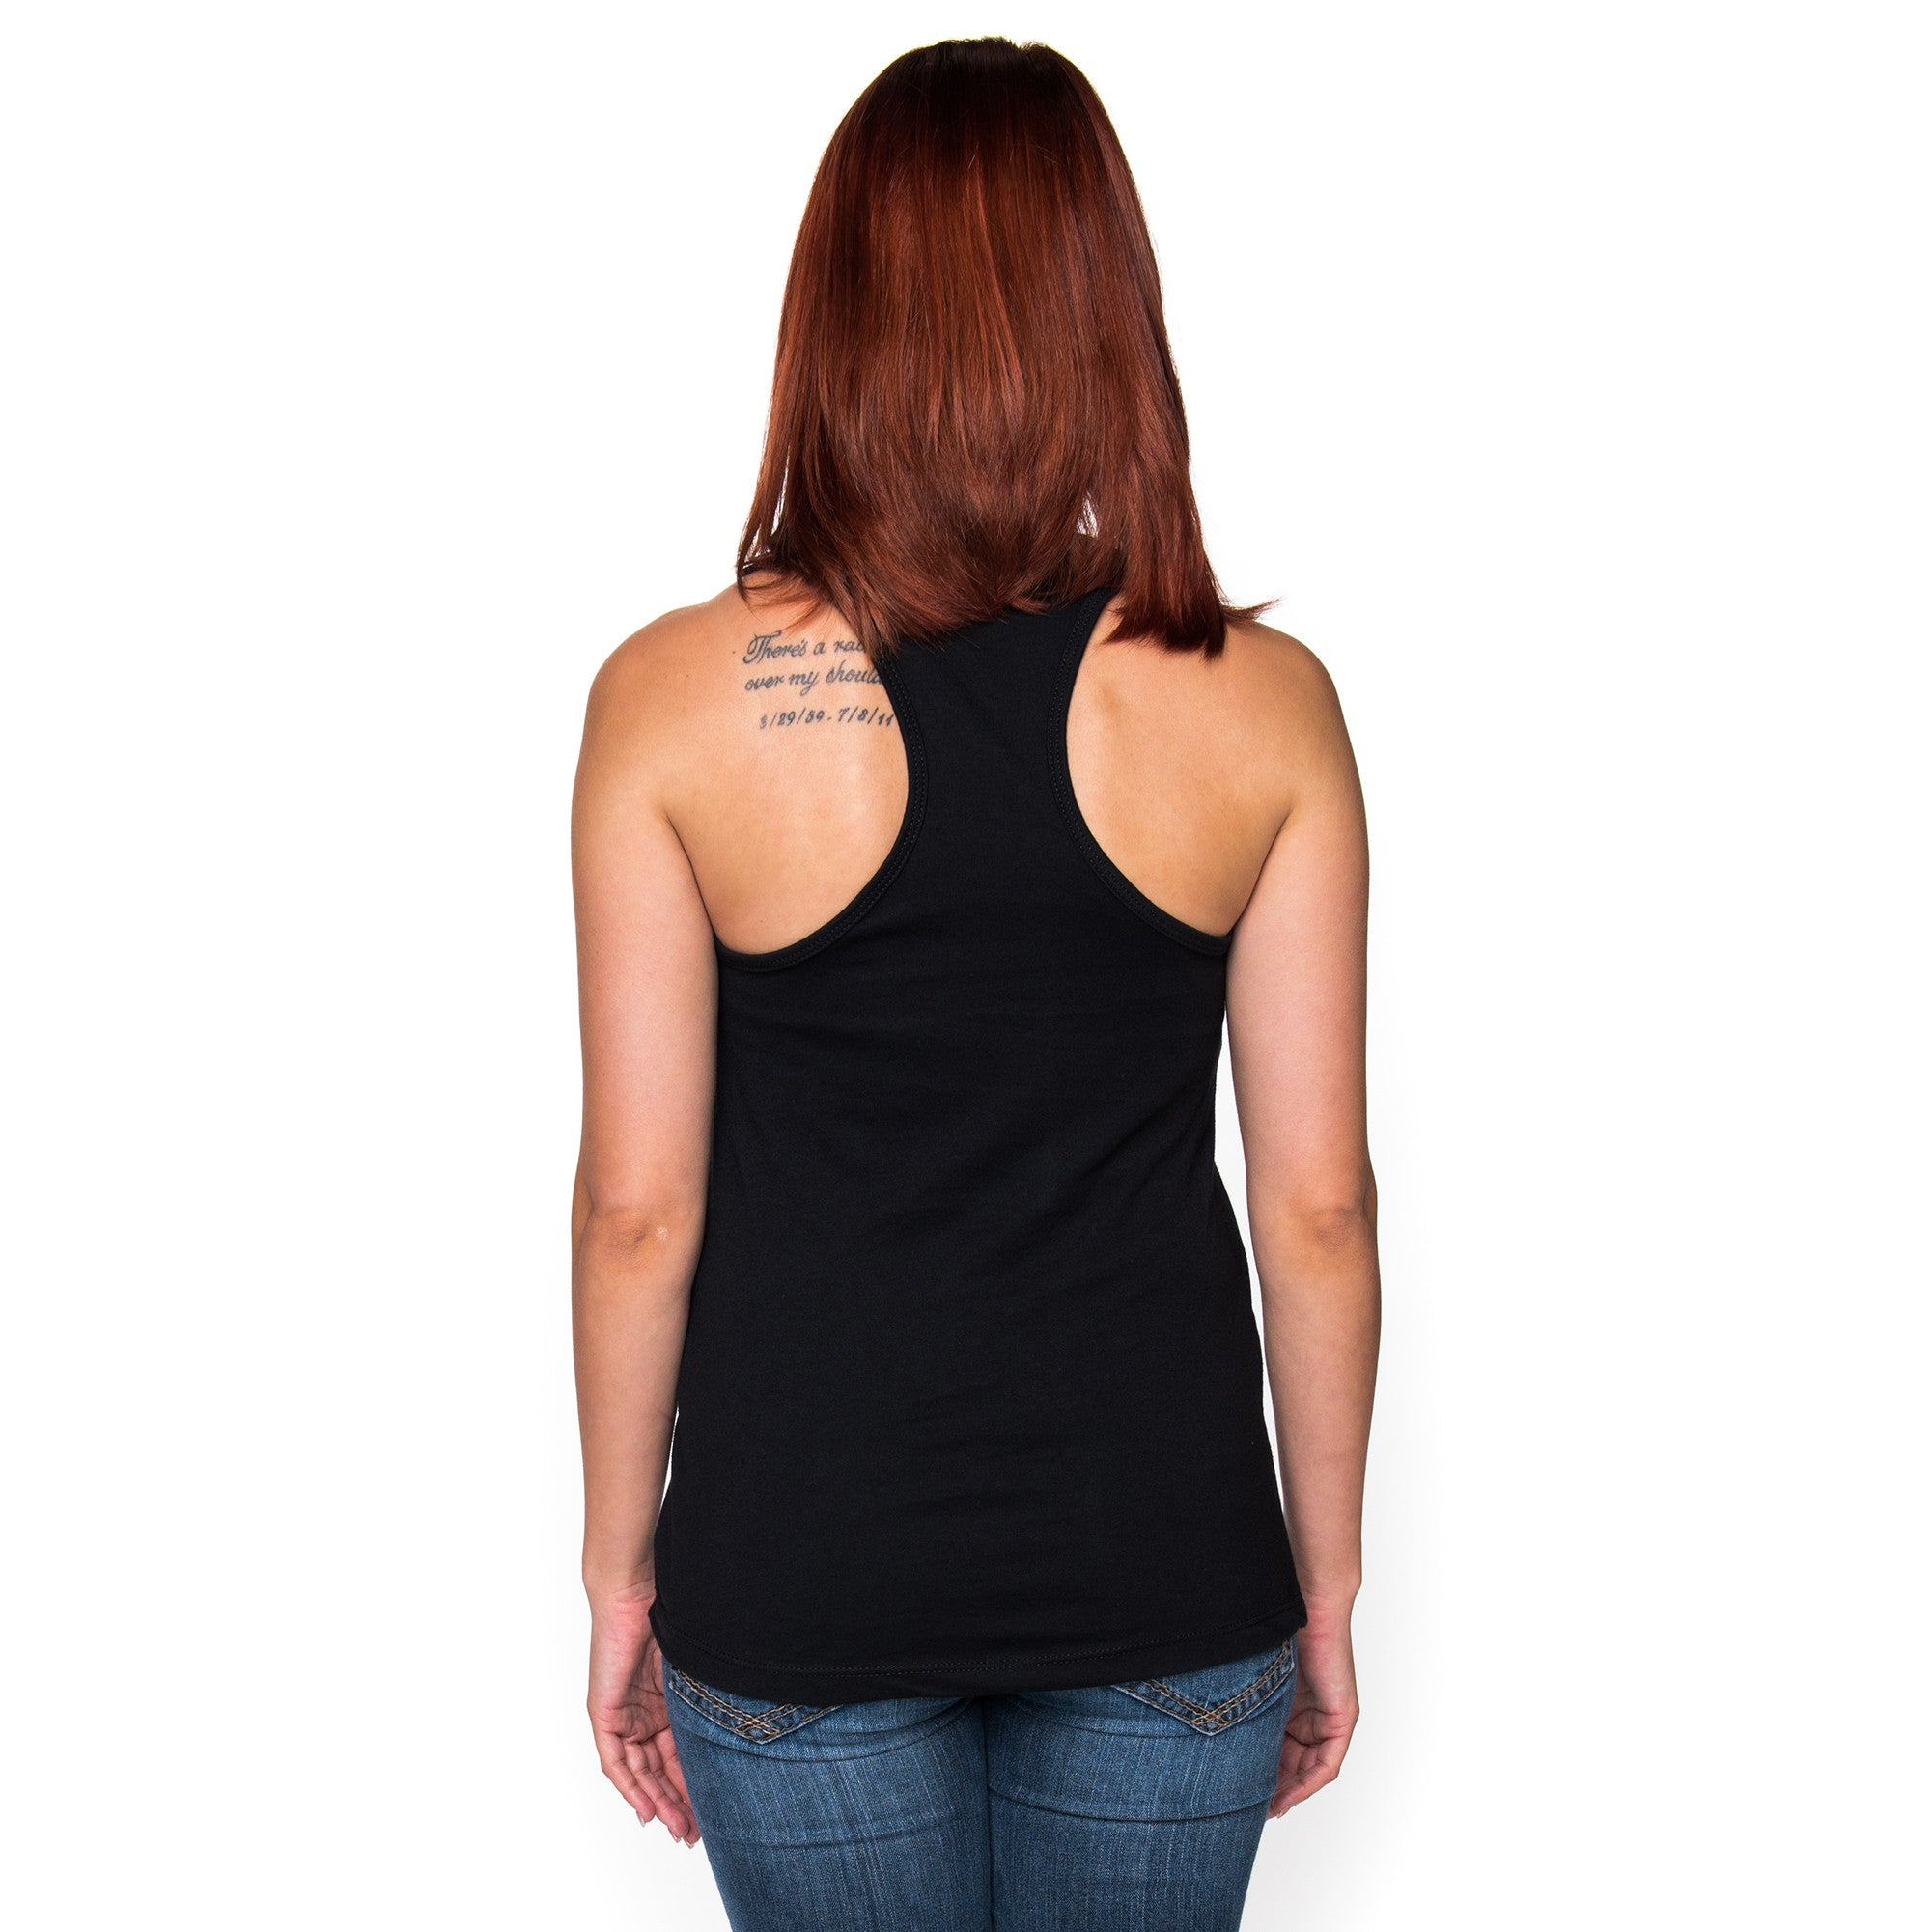 Ladies Gothic Infinity Black Racerback Tank Top with Rose Gold Ink